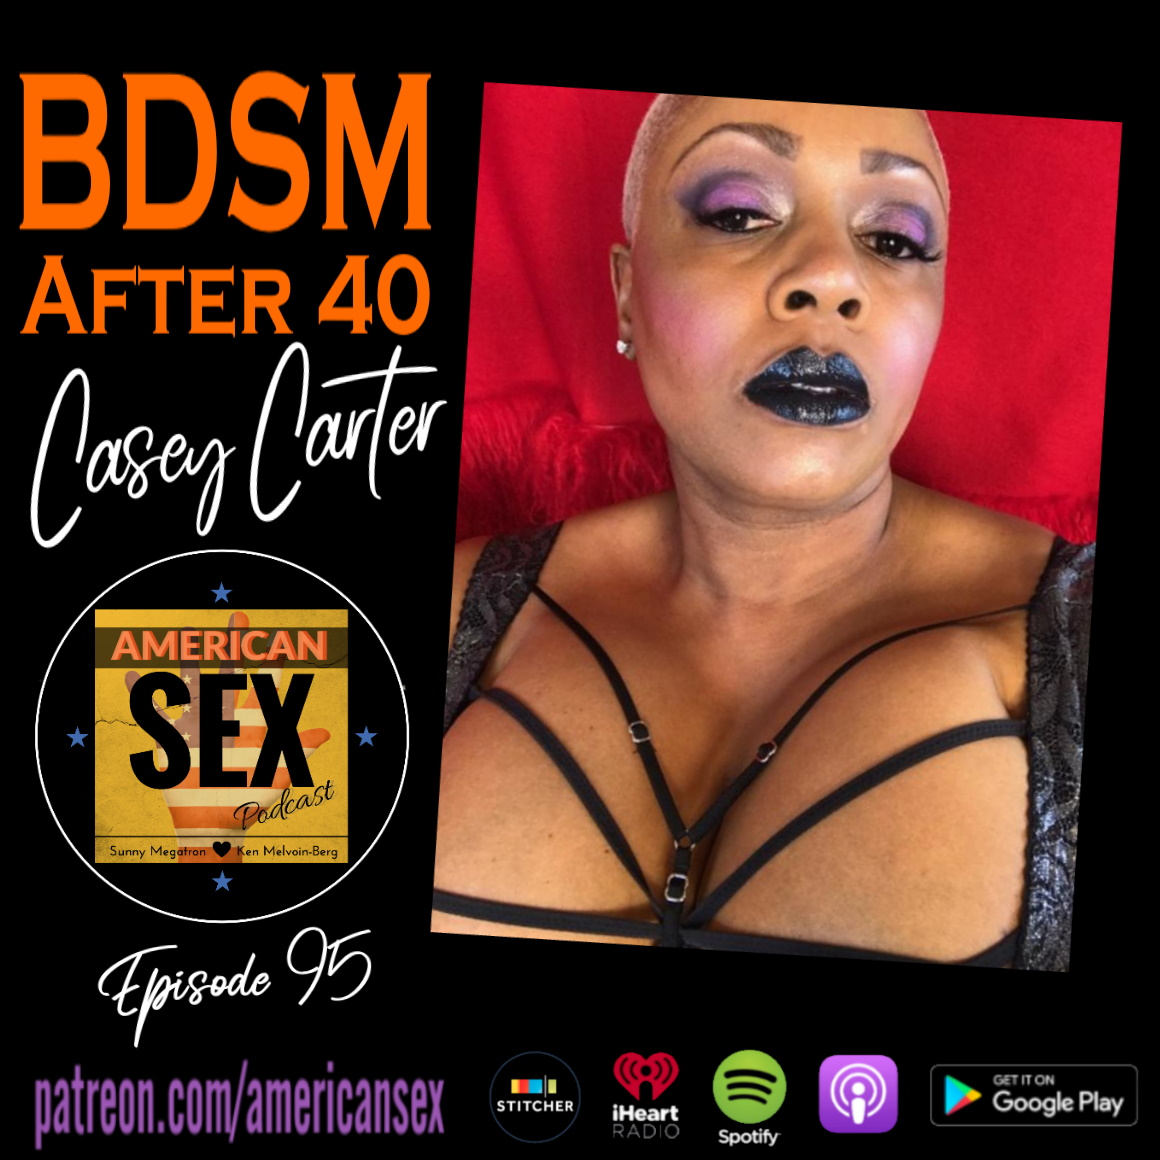 Amerikan Sex bdsm after 40 with casey carter - ep 95 american sex podcast